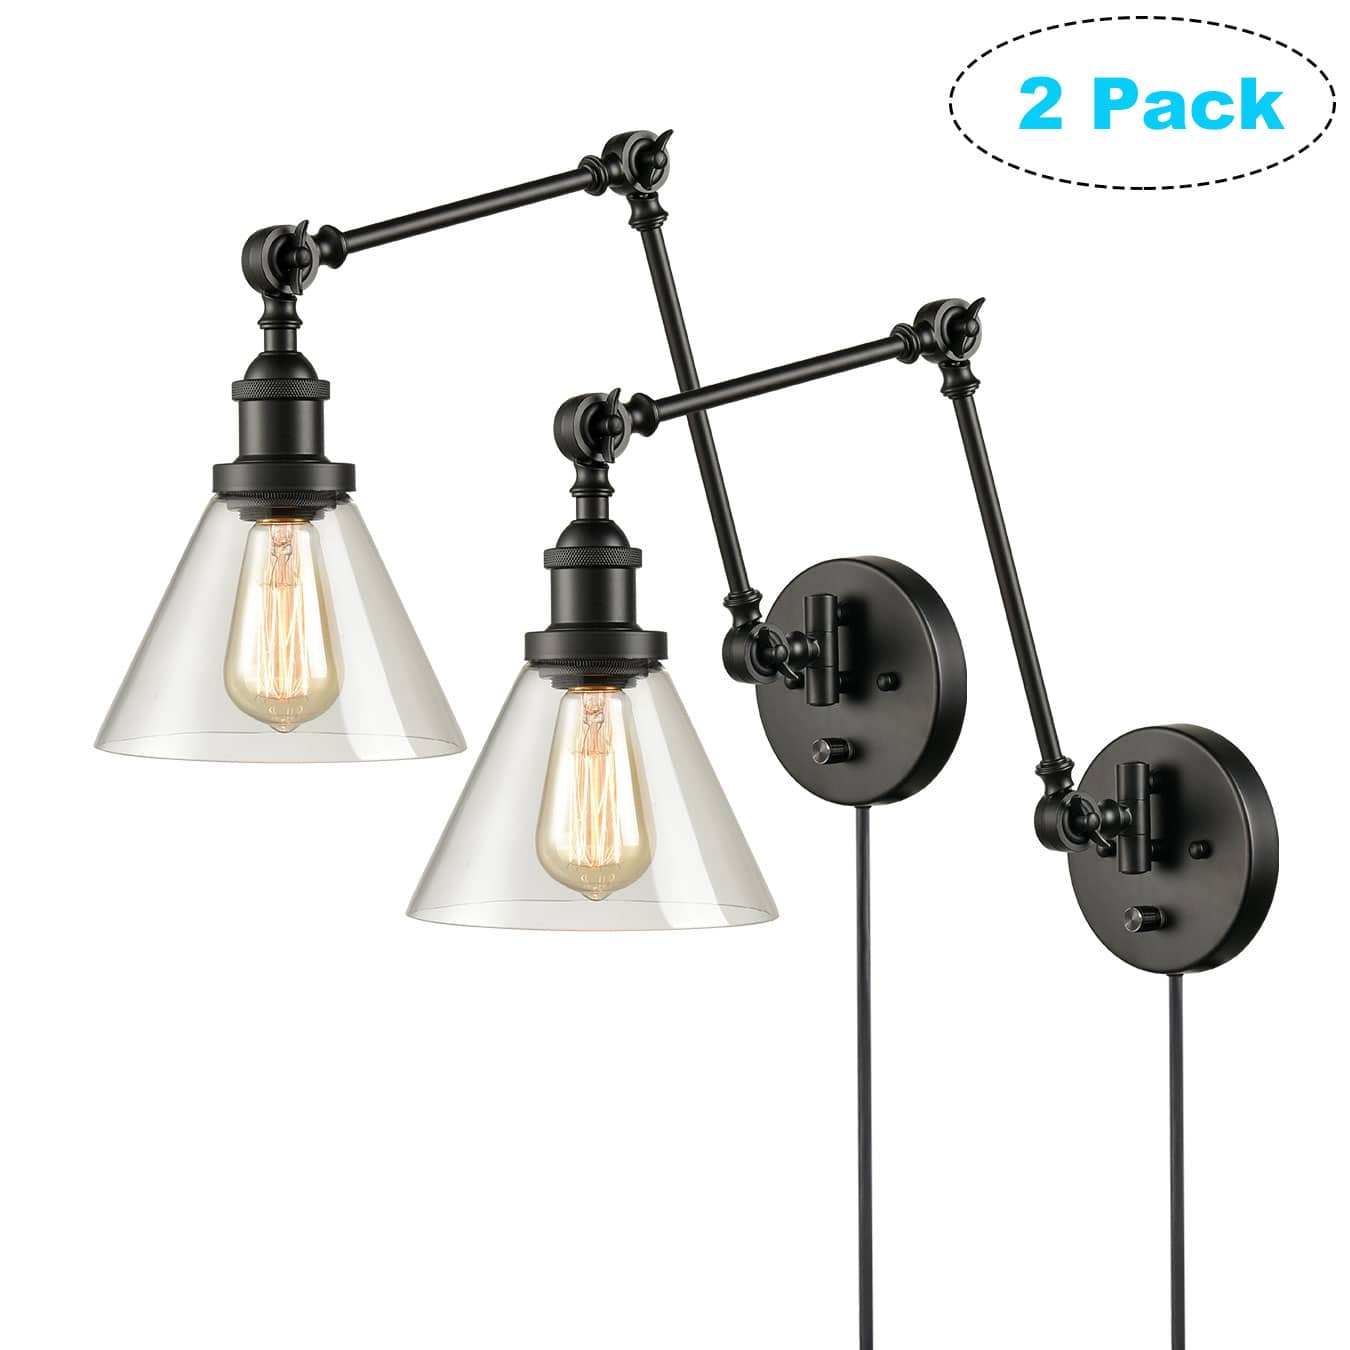 Industrial Glass Sconces Plug in Wall Lights Swing Arm Wall Lamps 2 Pack